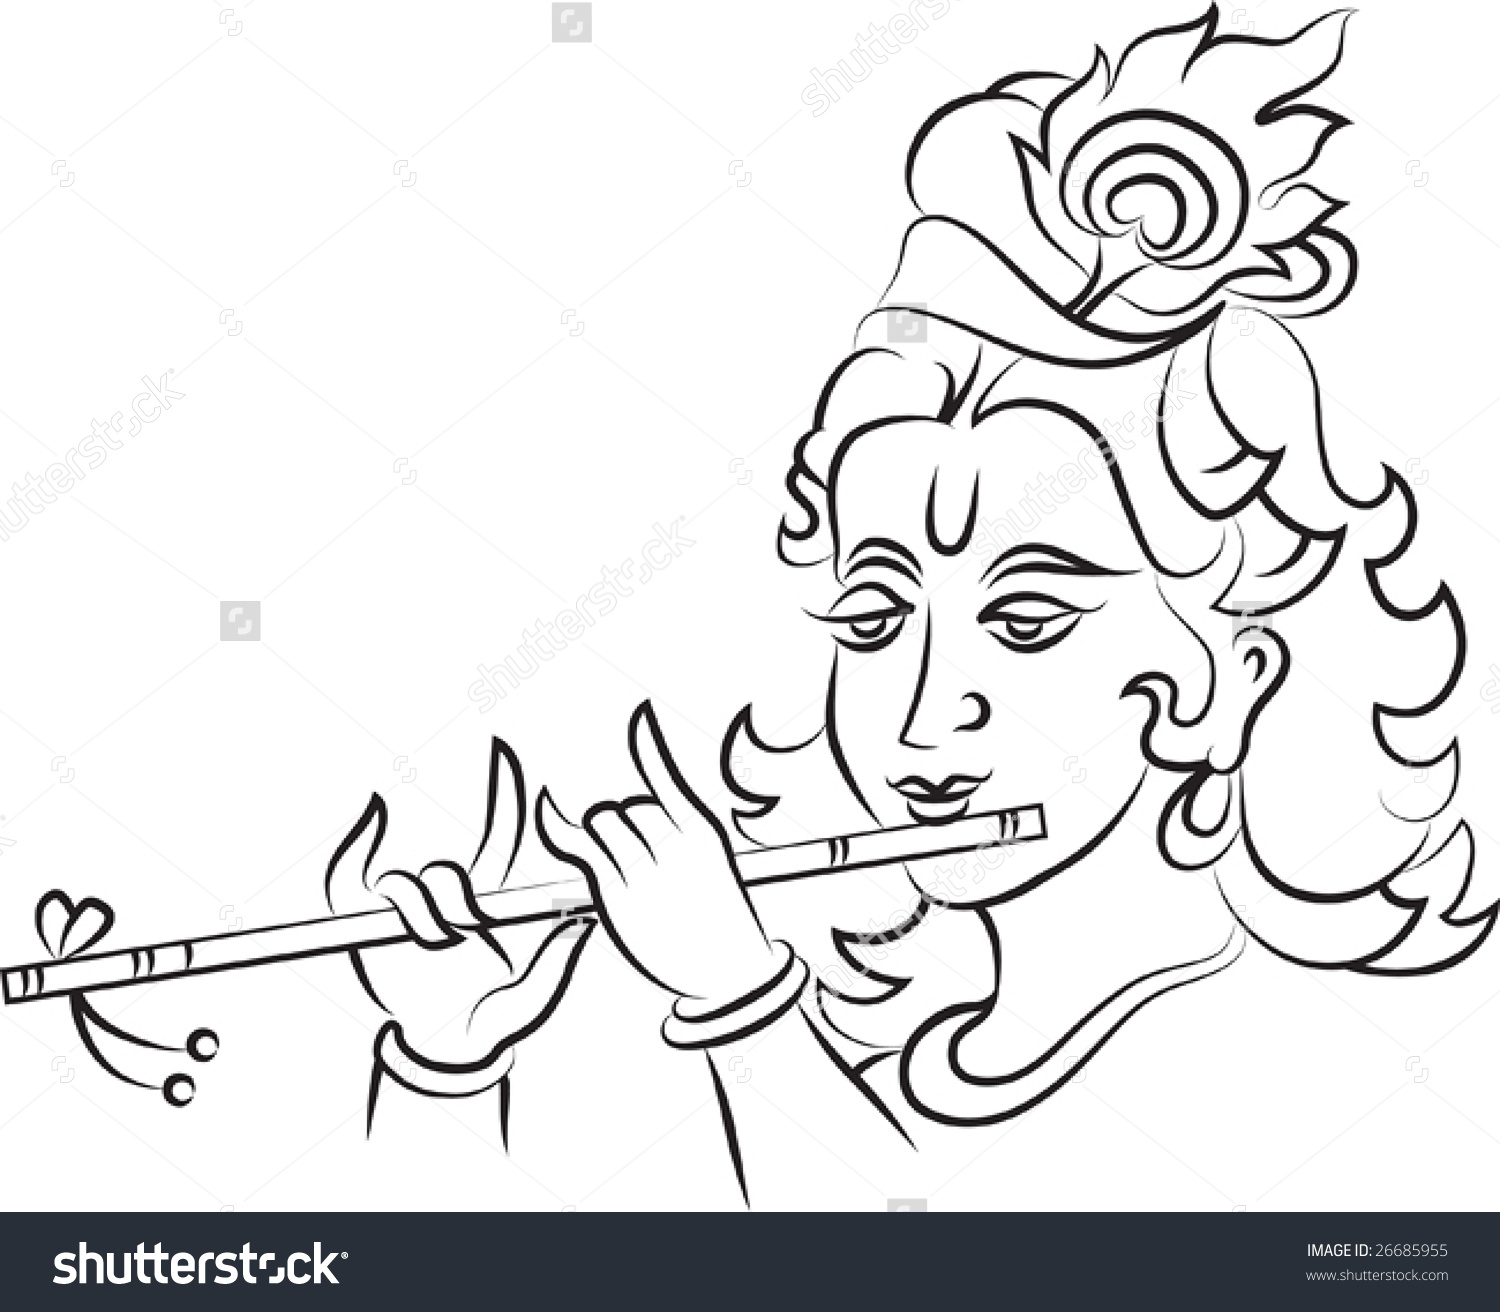 1500x1312 Drawings Of Lord Krishna How To Draw Lord Krishna The Eighth